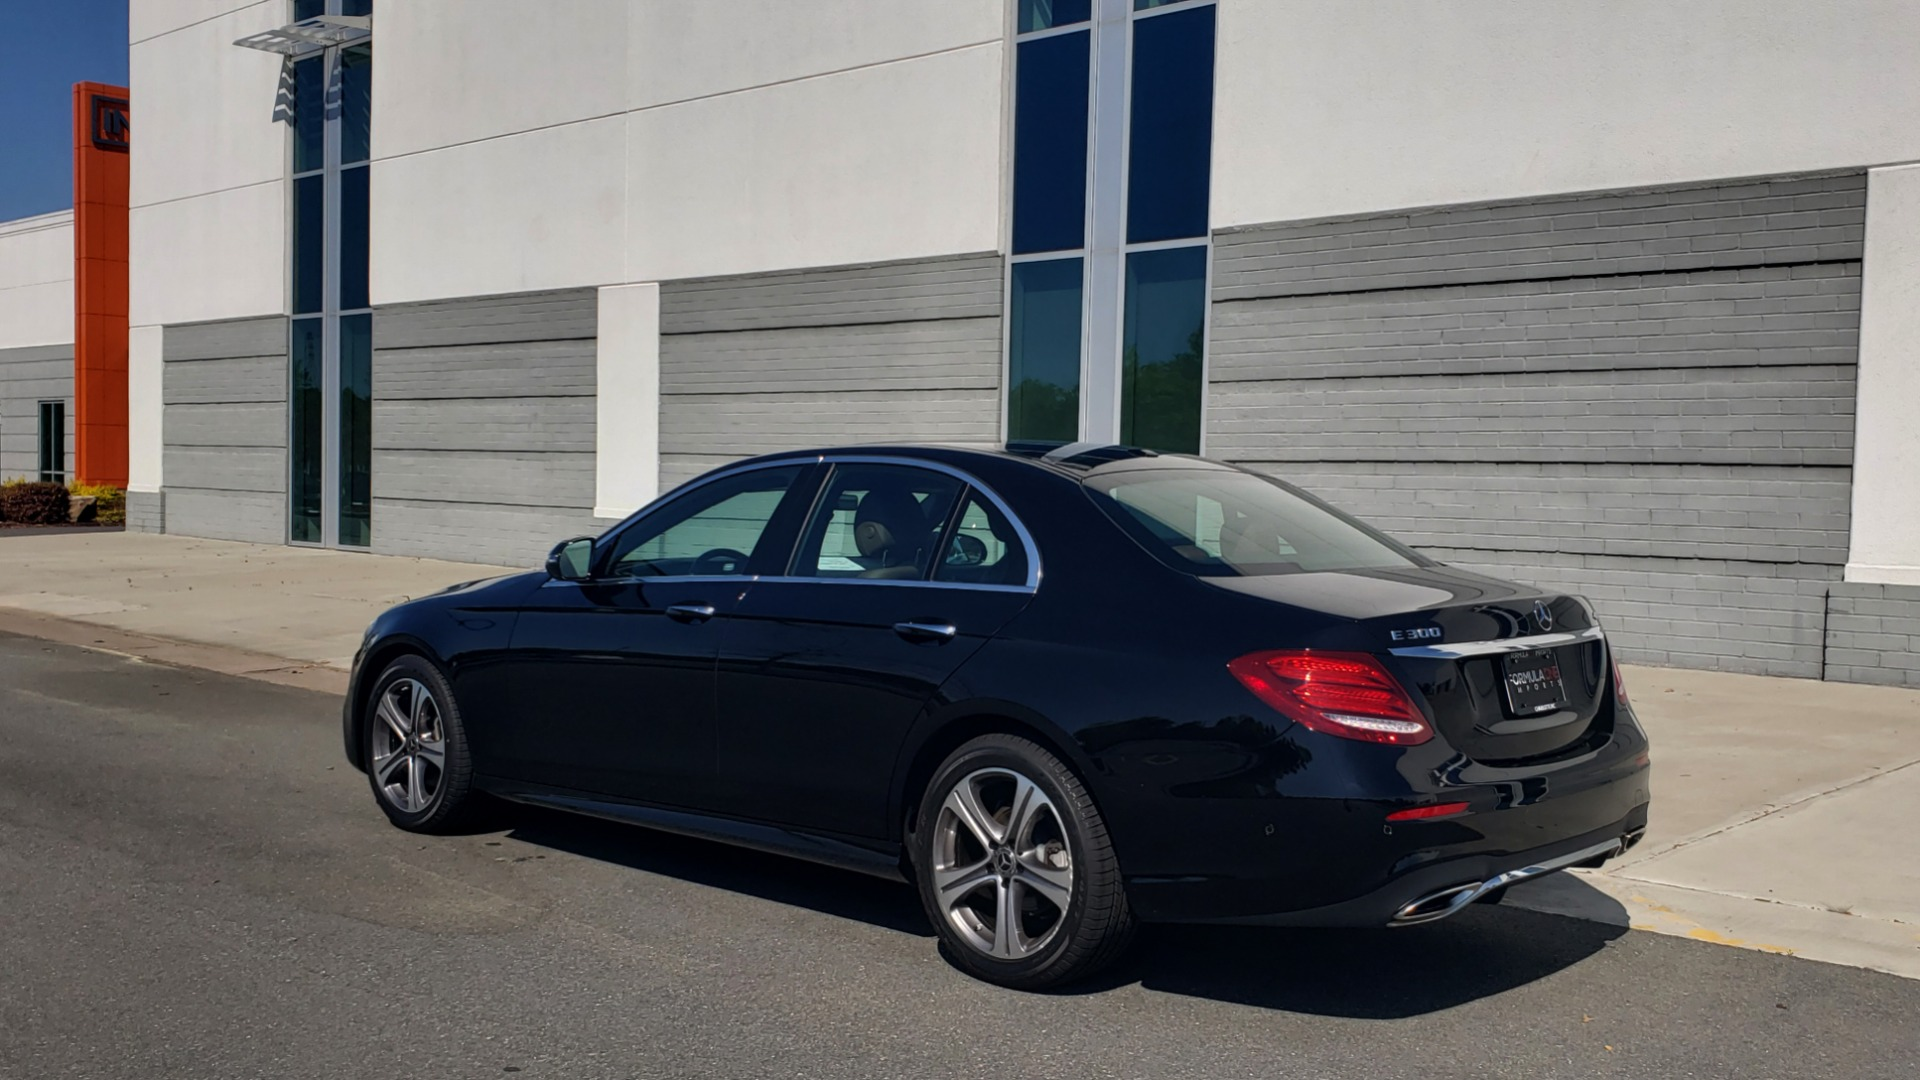 Used 2018 Mercedes-Benz E-CLASS E 300 4MATIC PREMIUM / NAV / BURMESTER SND / BSM / REARVIEW for sale $33,995 at Formula Imports in Charlotte NC 28227 6